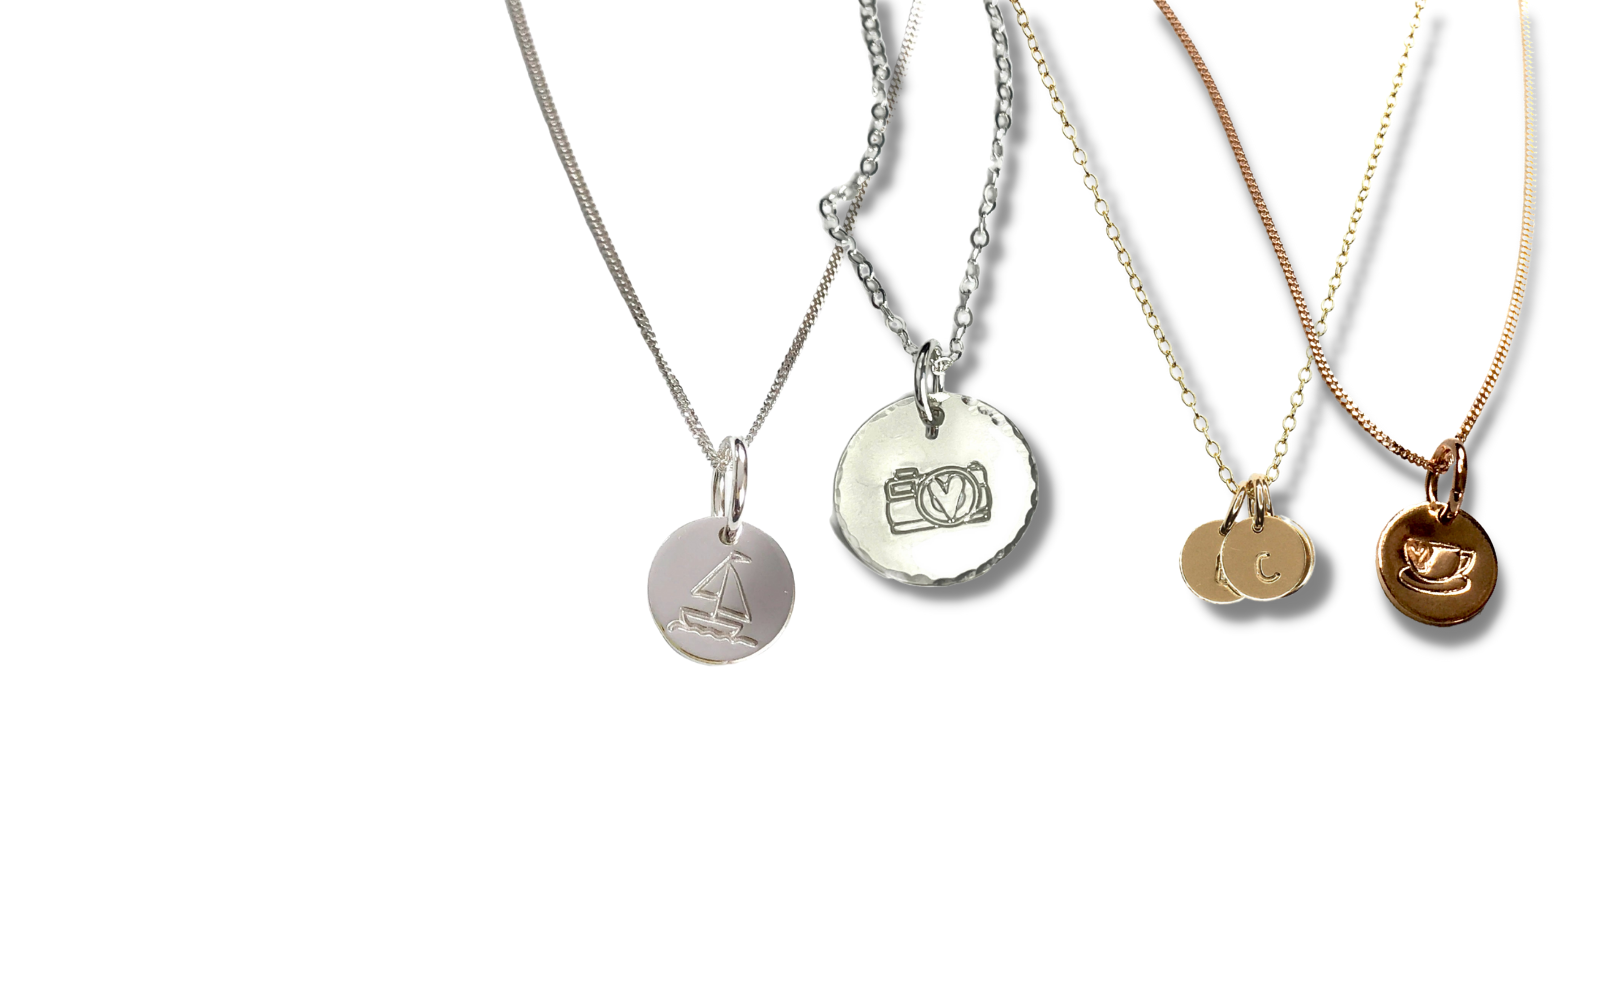 Round disk necklaces that can be hand-stamped with different symbols or words.  Personalize them how you like